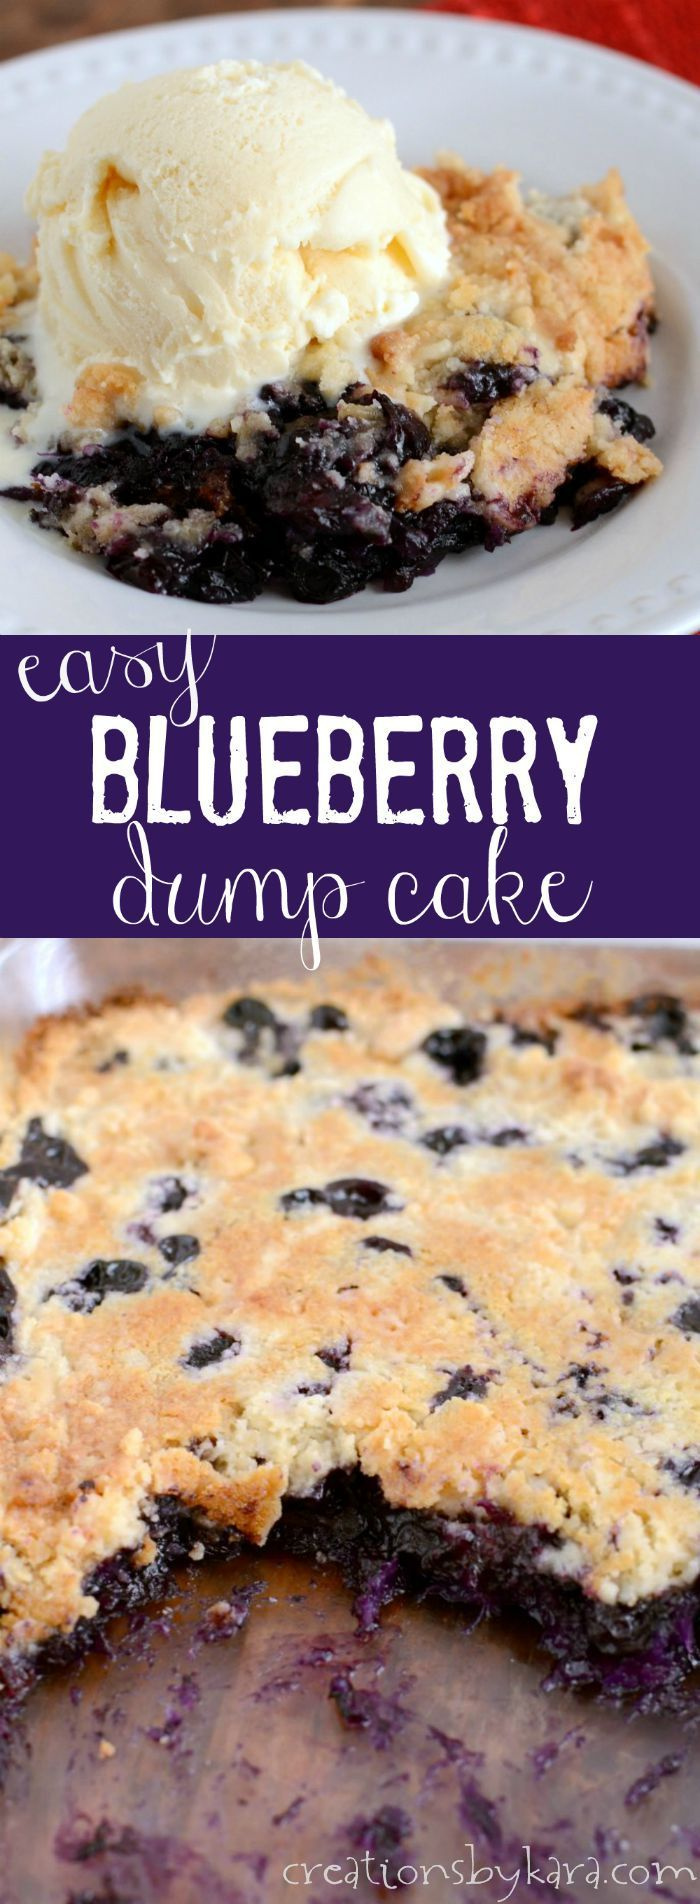 This Blueberry Dump Cake uses fresh berries instead of pie filling, so it has a fresh taste that is unbeatable!  An easy dessert for summer potlucks!